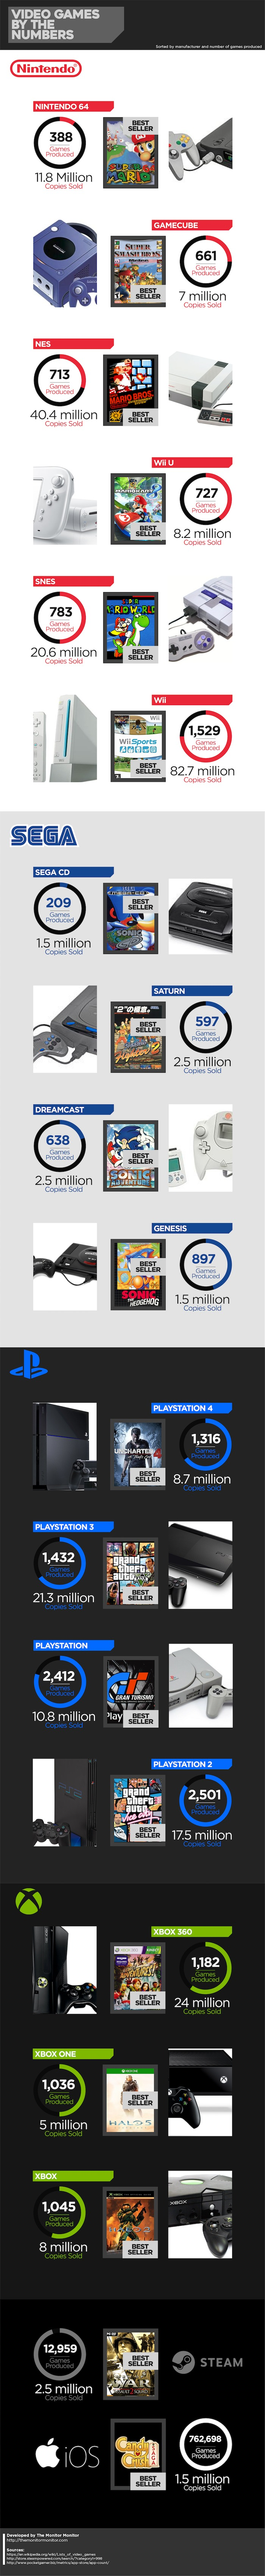 Video Games By The Numbers from The Monitor Monitor